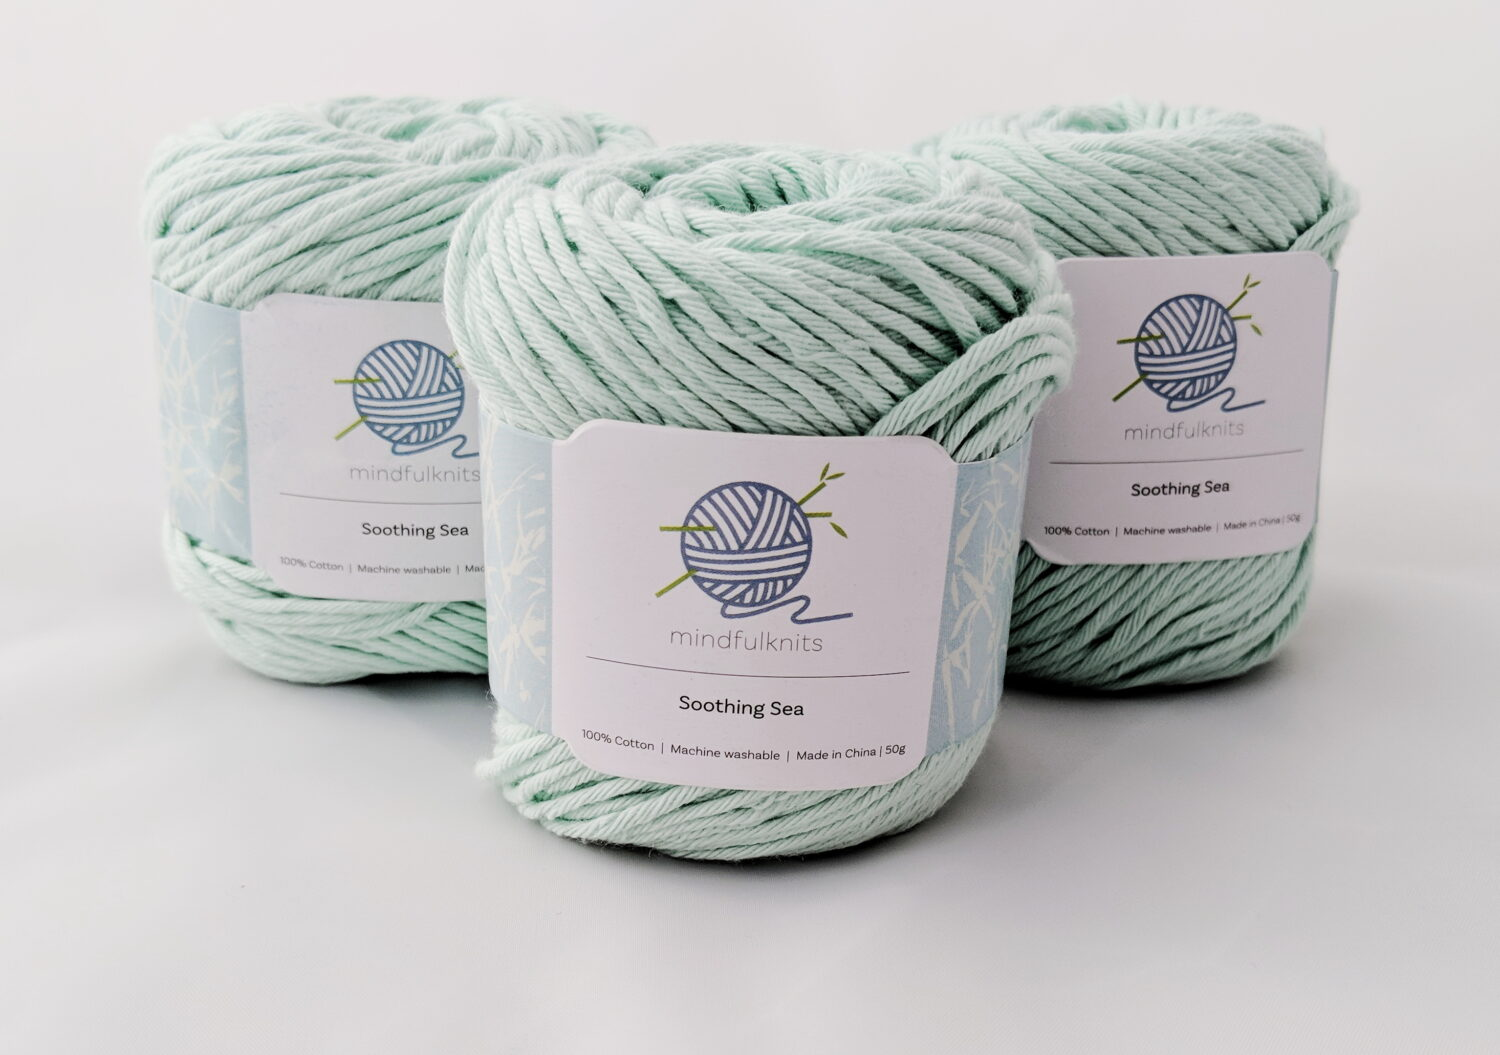 Mindfulknits 100% Cotton Yarns in Knitting kits for beginner's